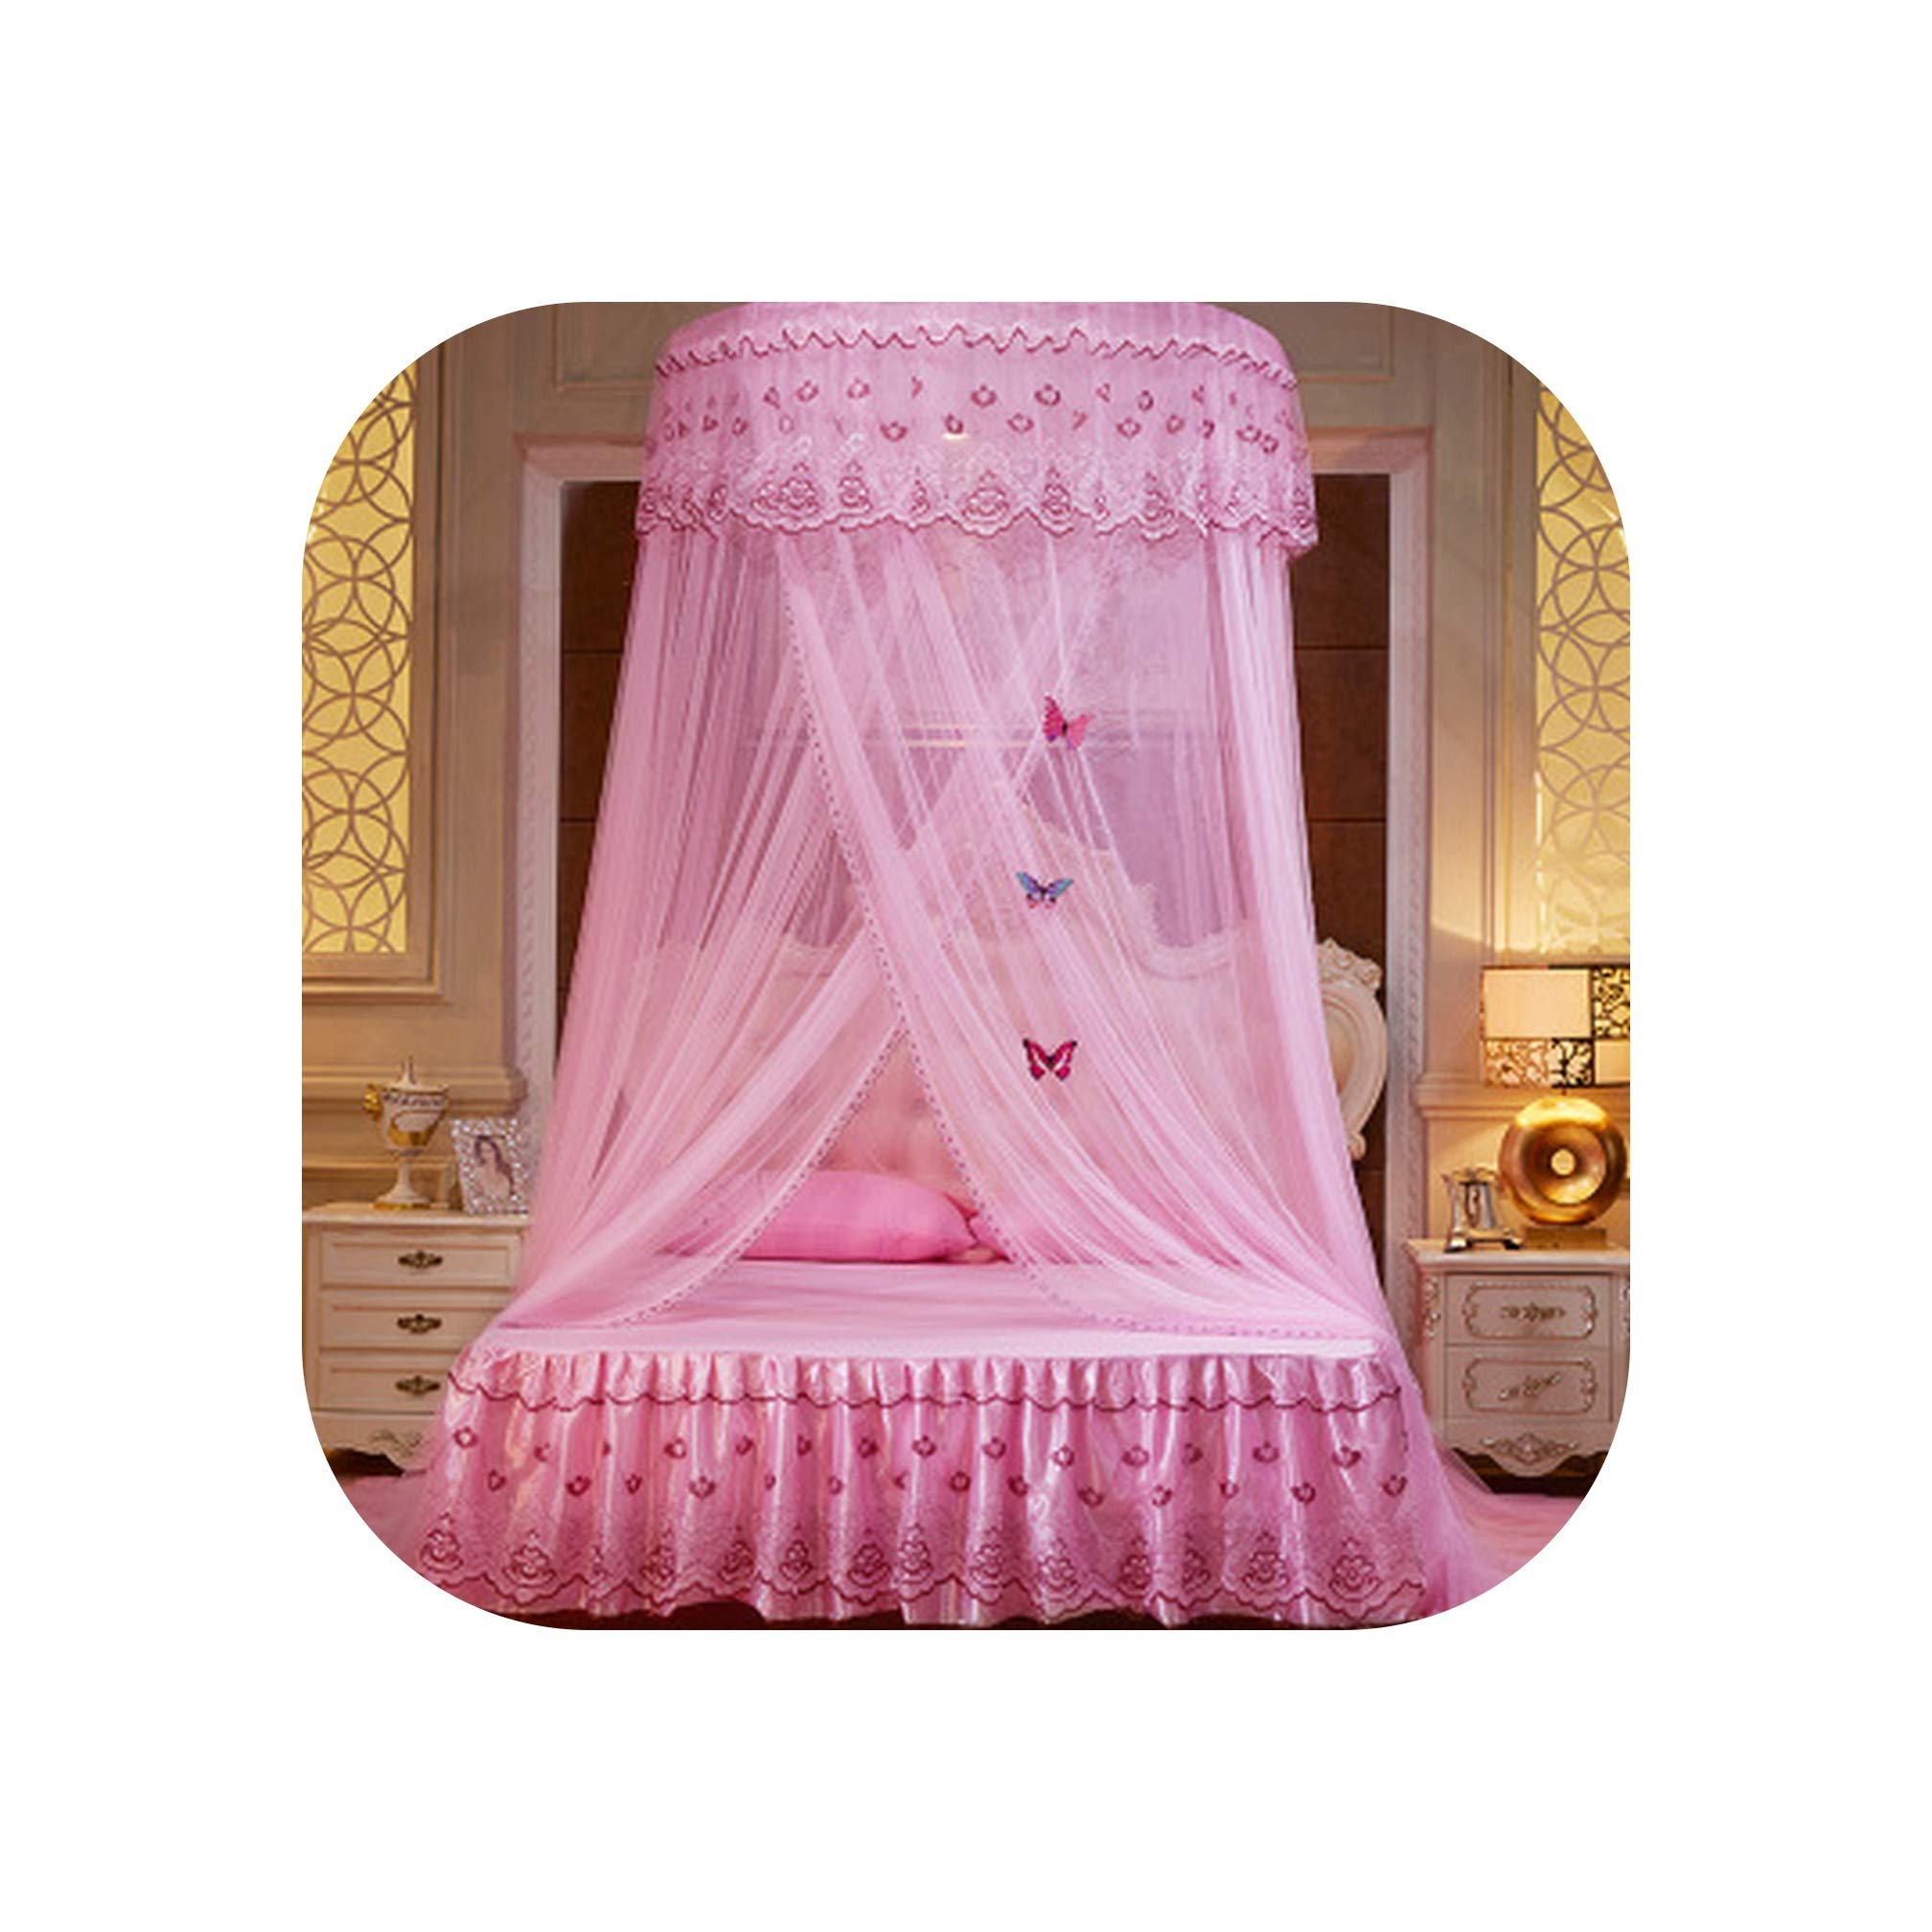 Folding Palace Mosquito Net Double Bed Mosquito Net Adults Anti Insert Bed Tent Kids Canopy Princess Bed Curtain Mesh,Pink,1.5m (5 feet) Bed by SuWuan mosquito net (Image #1)